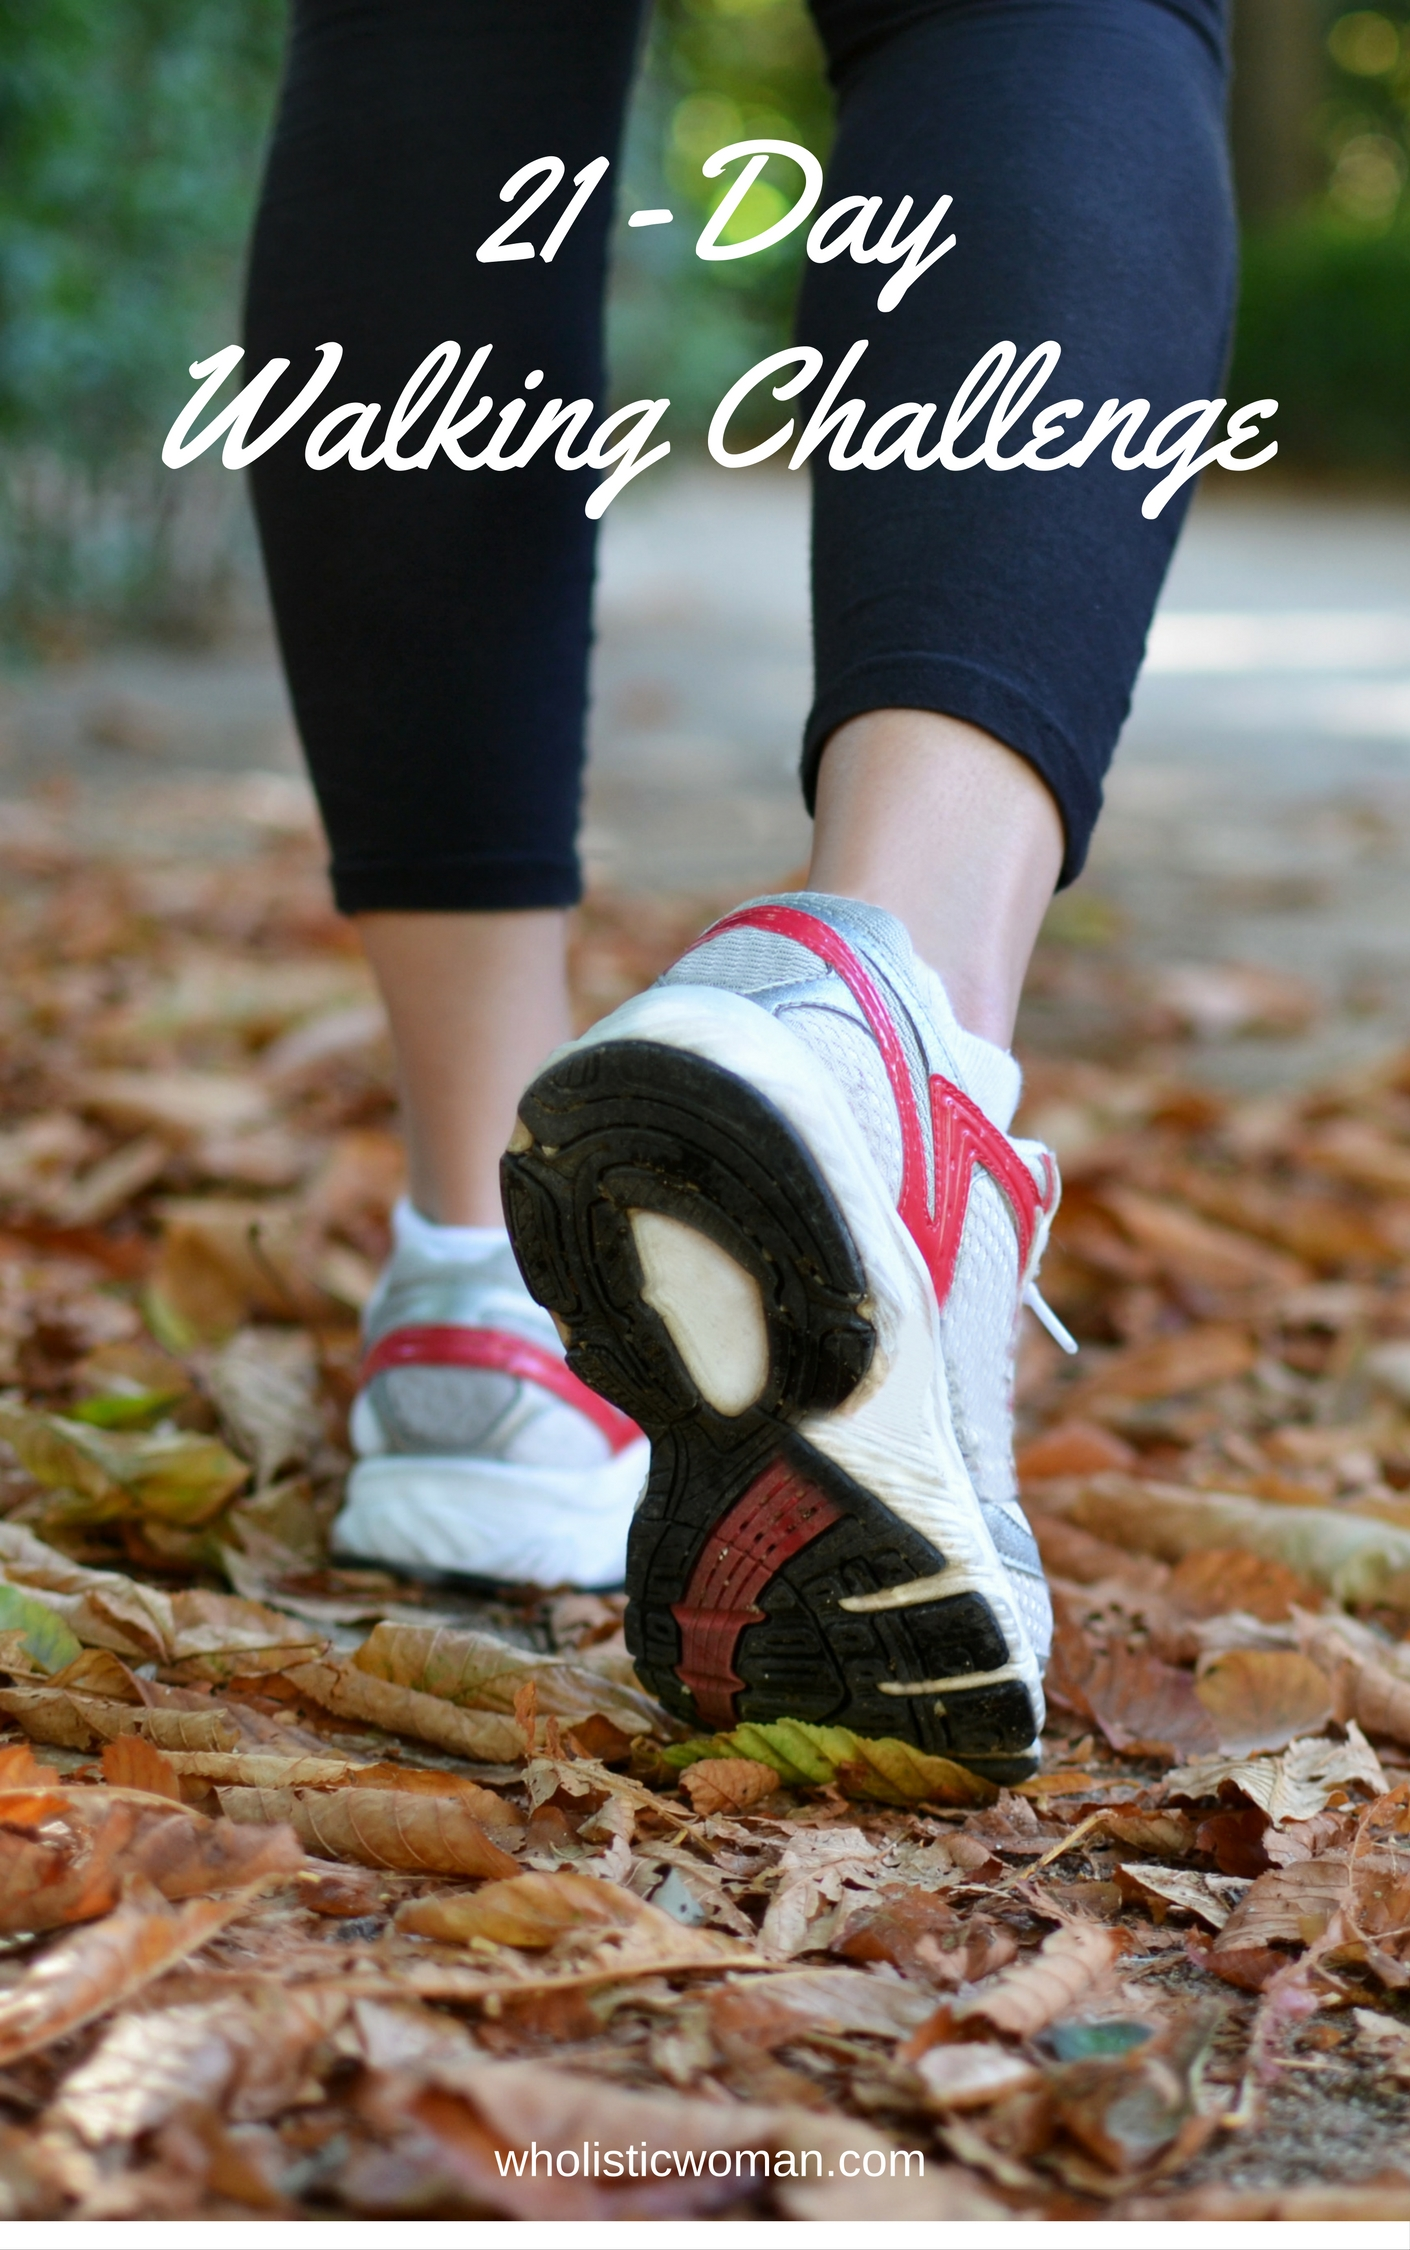 21 Day Walking Challenge